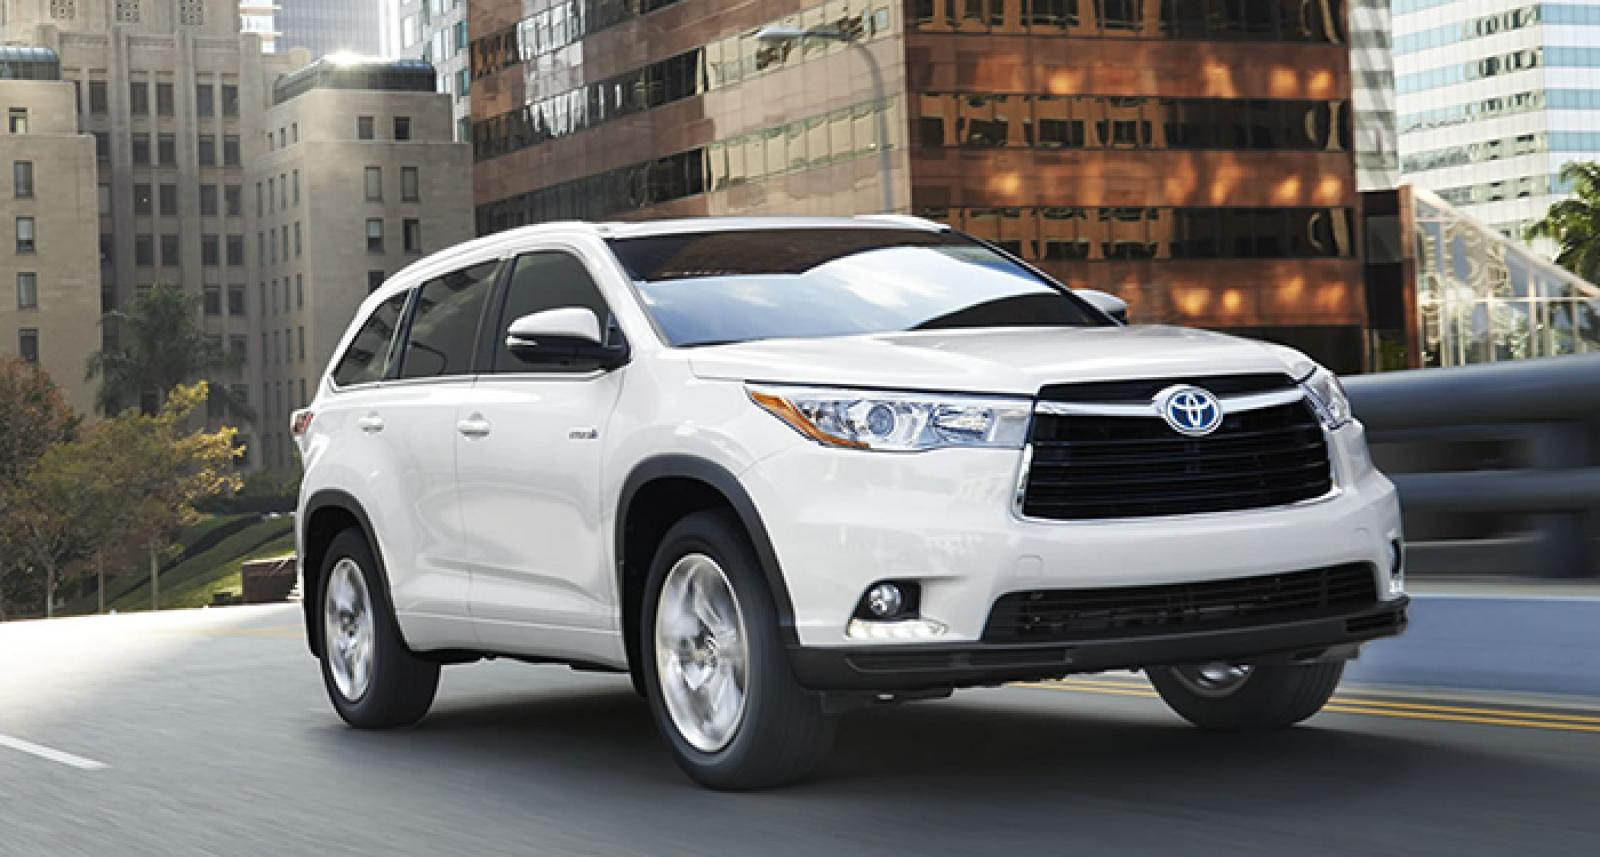 sale htm toyota highlander exotic dubuque for used ia msrp